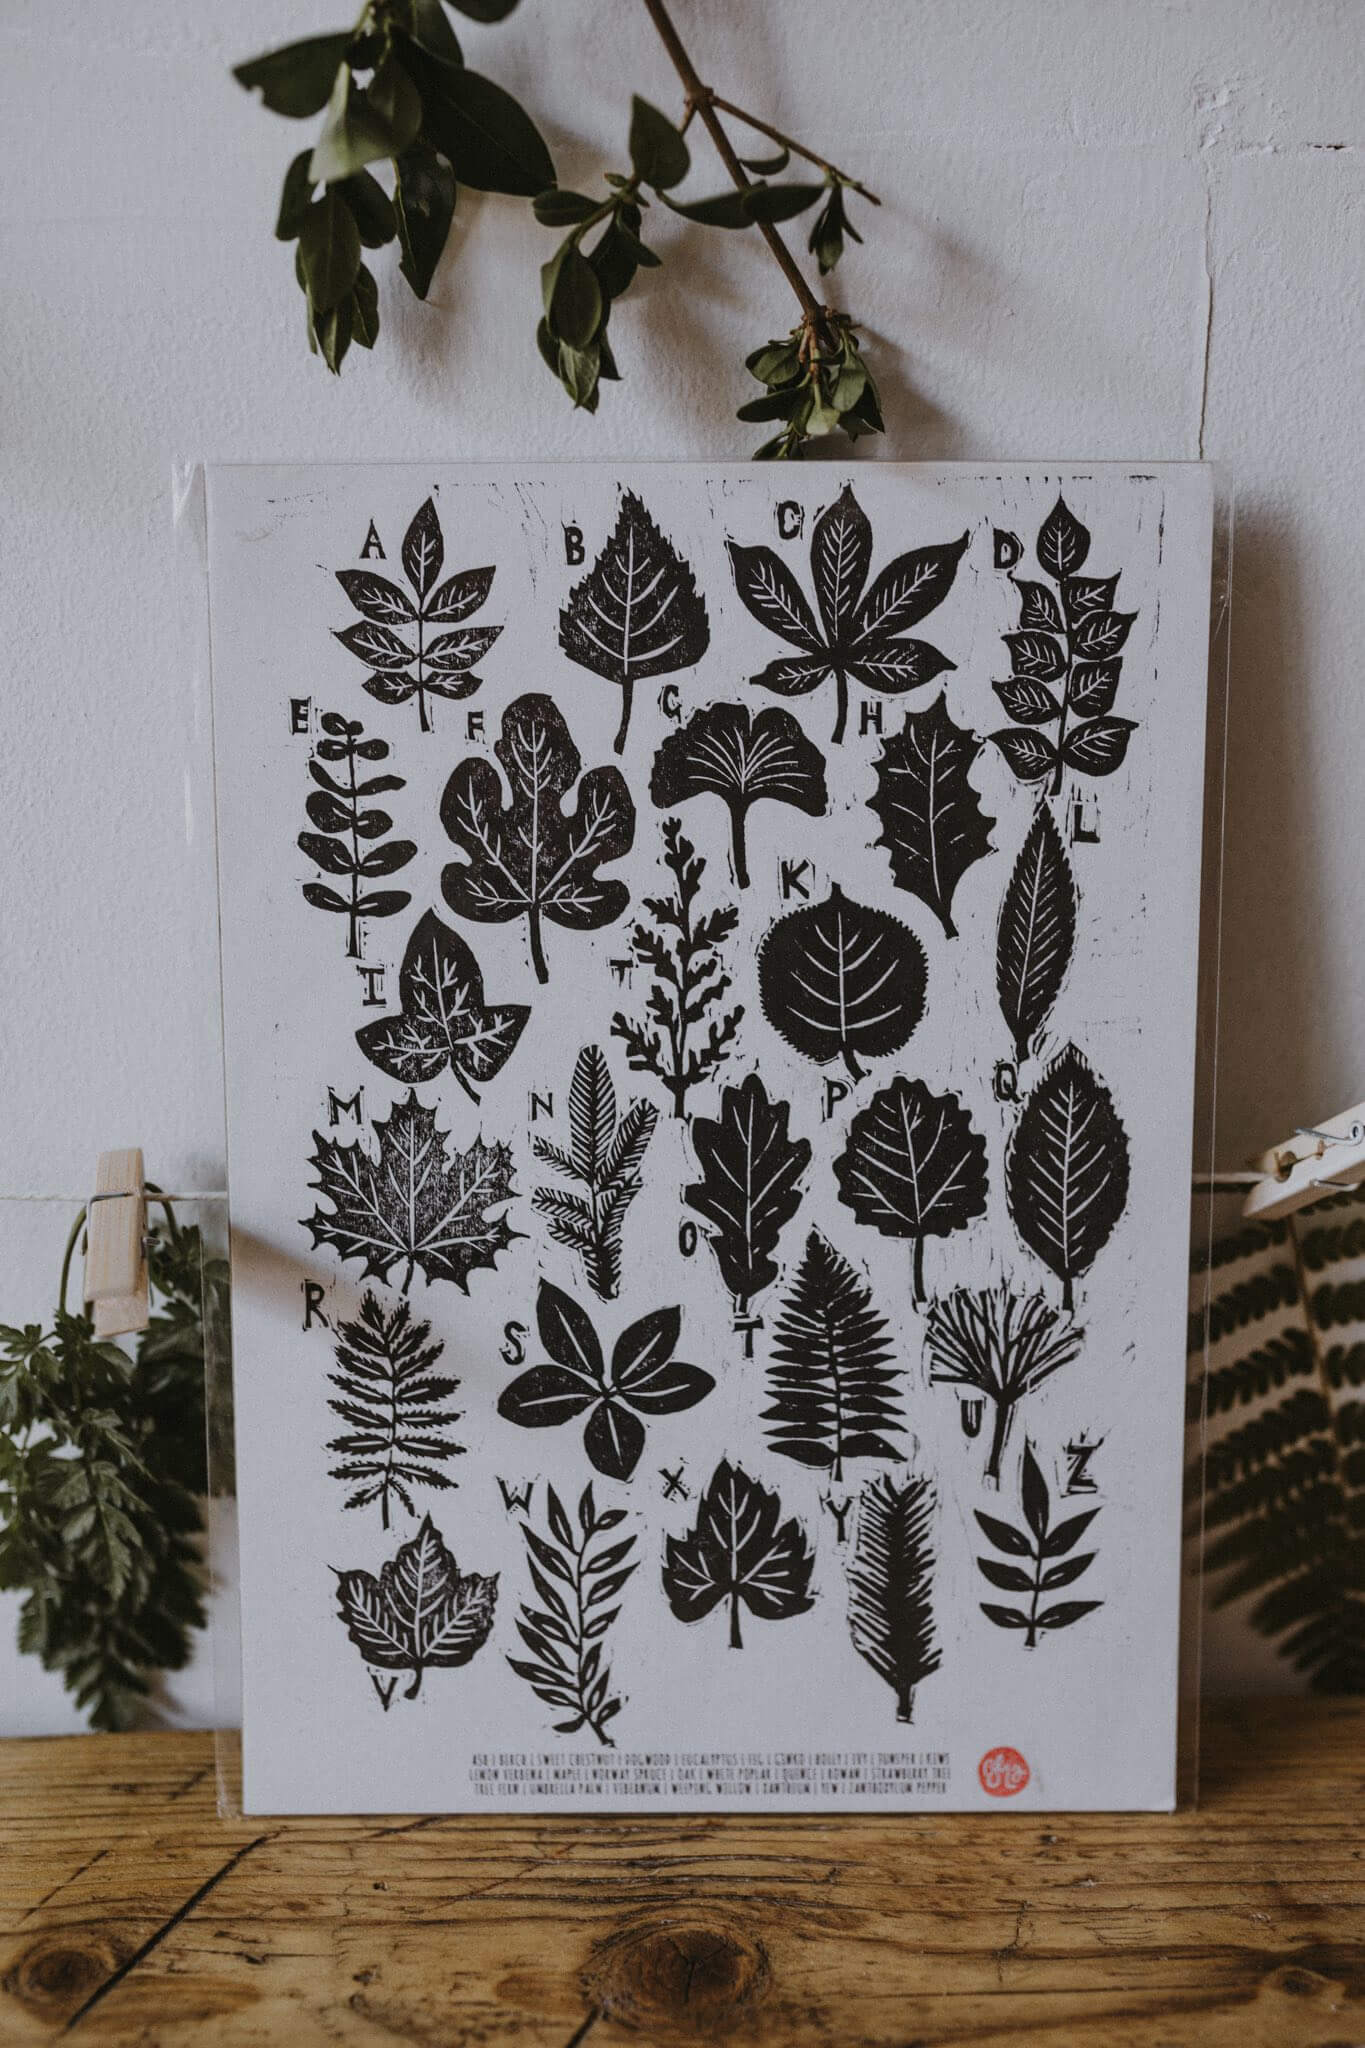 a to z of leaves print